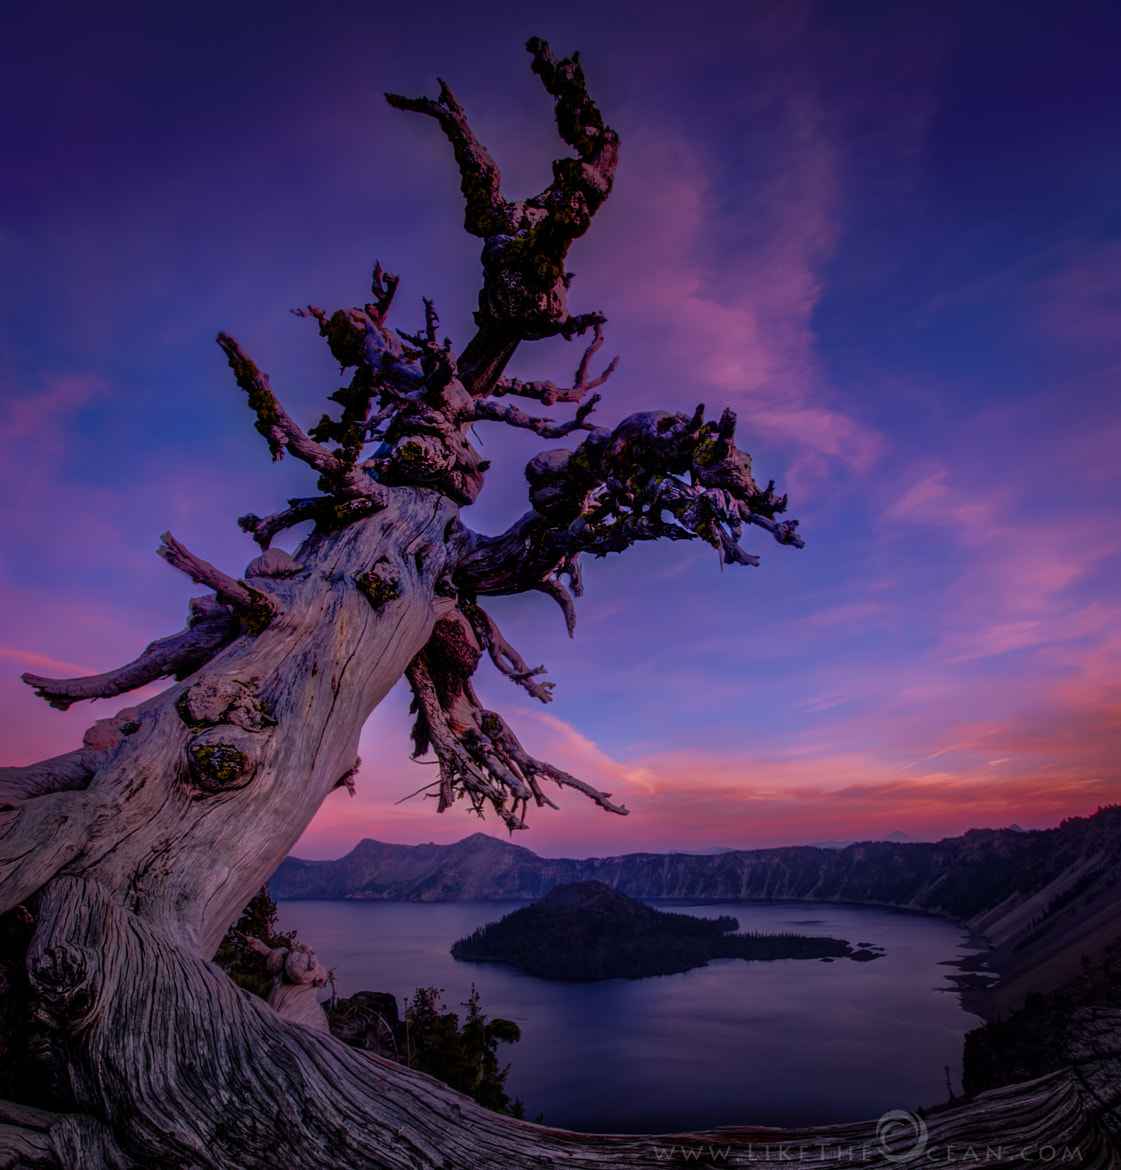 Photograph Twilight Colors at Crater Lake by Sathya R on 500px